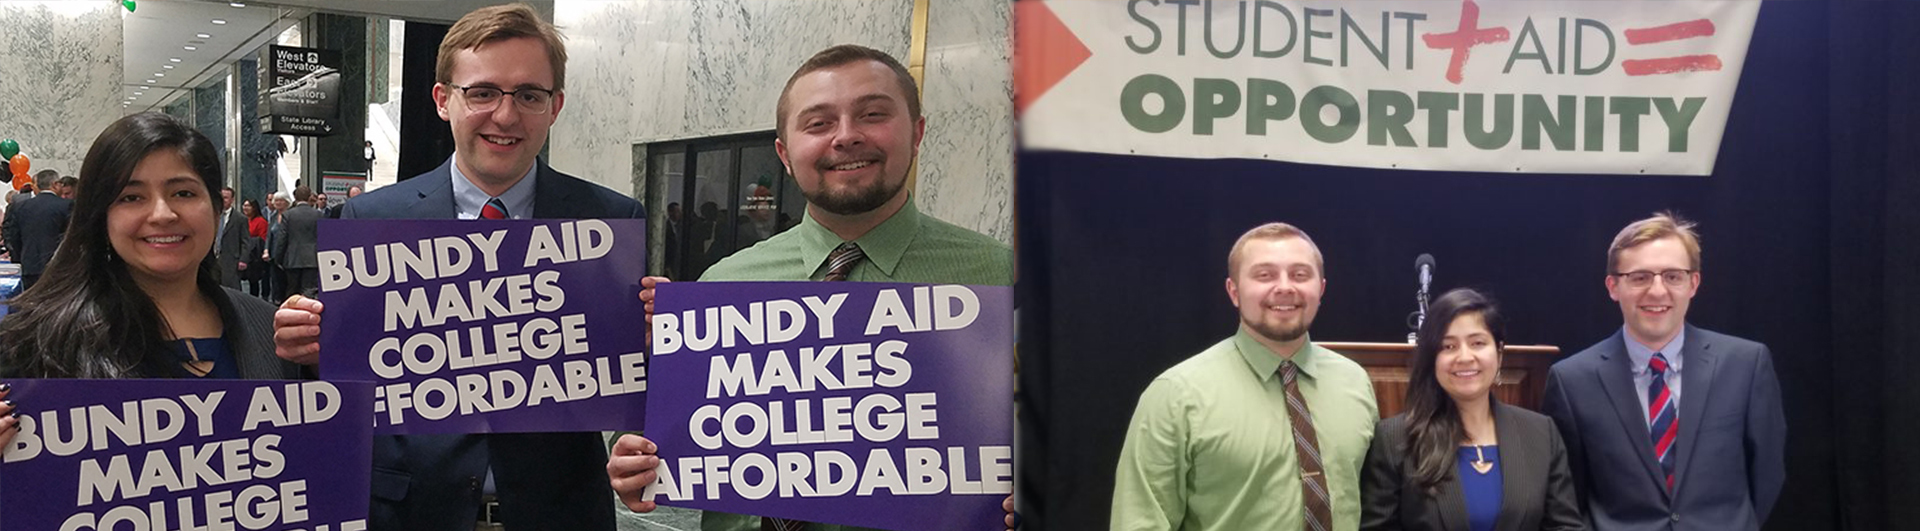 St. Joseph's students went to Albany to support Bundy aid in February 2018.